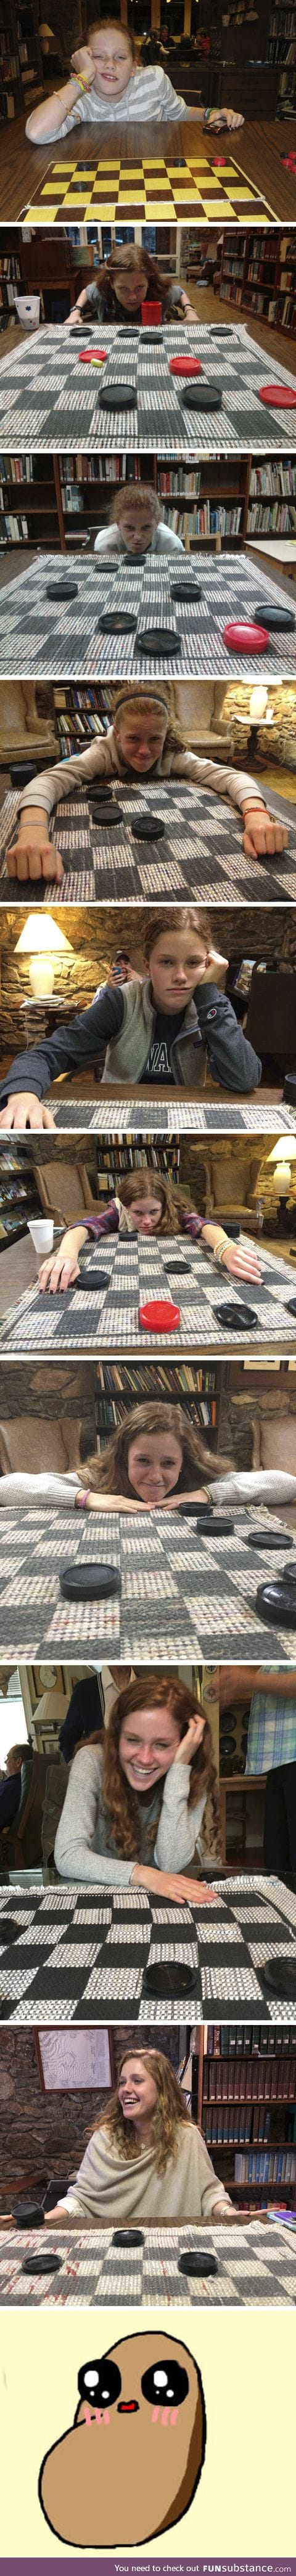 He's Been Documenting His Cousin Being Defeated On Checkers On Thanksgiving